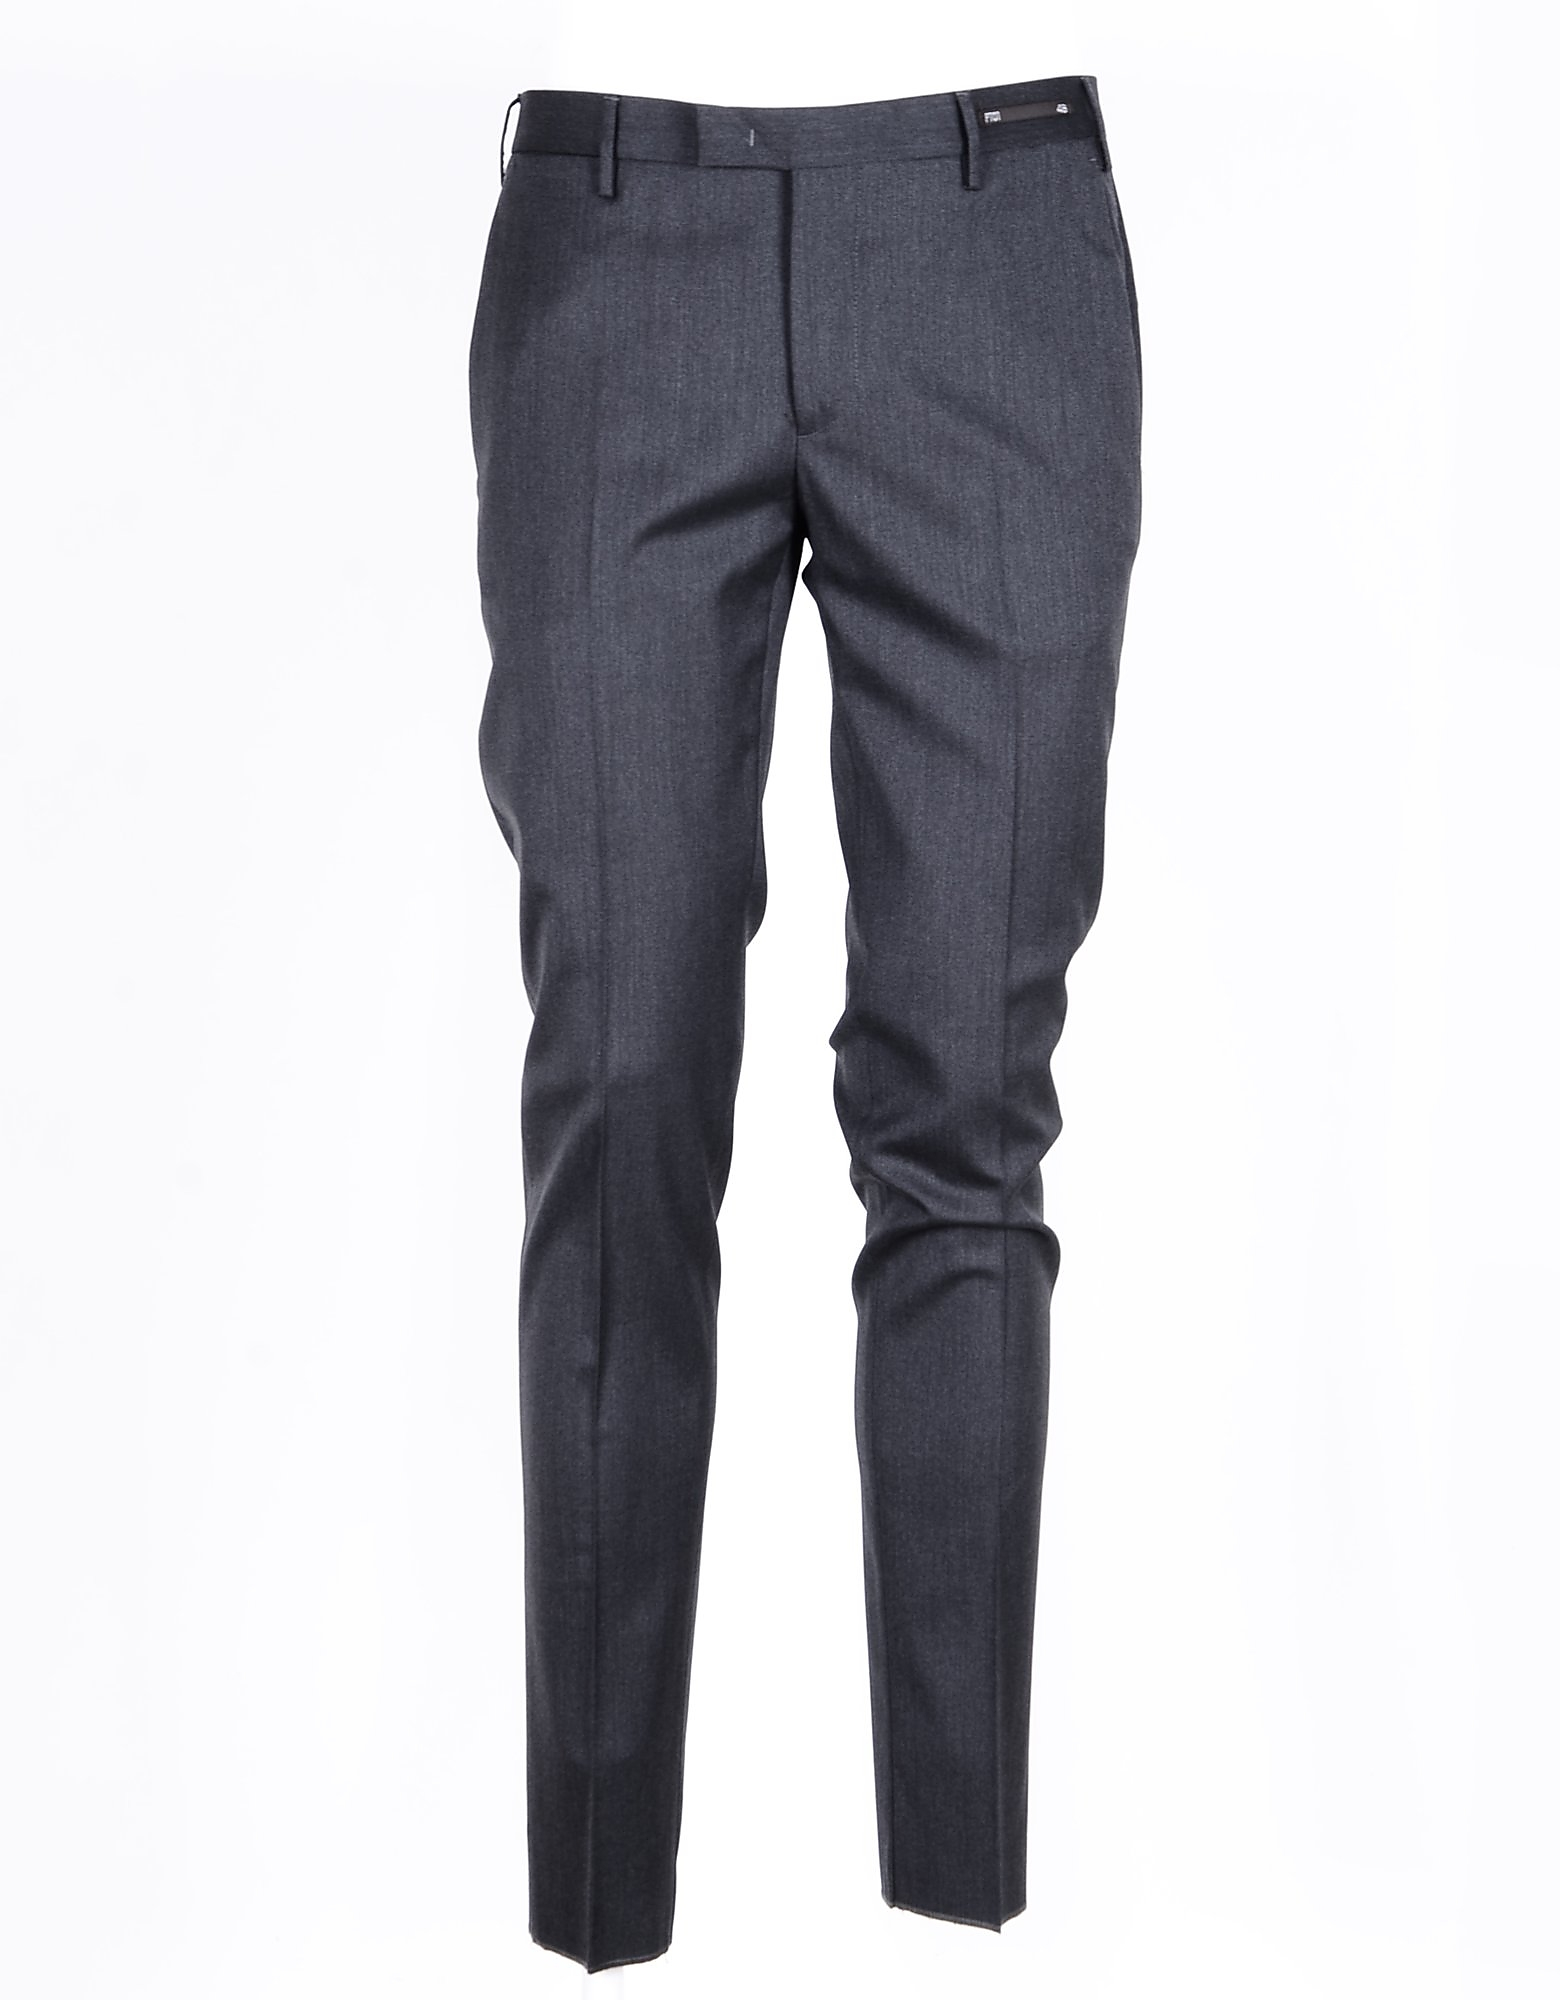 PT01 Designer Pants, Men's Anthracite Pants